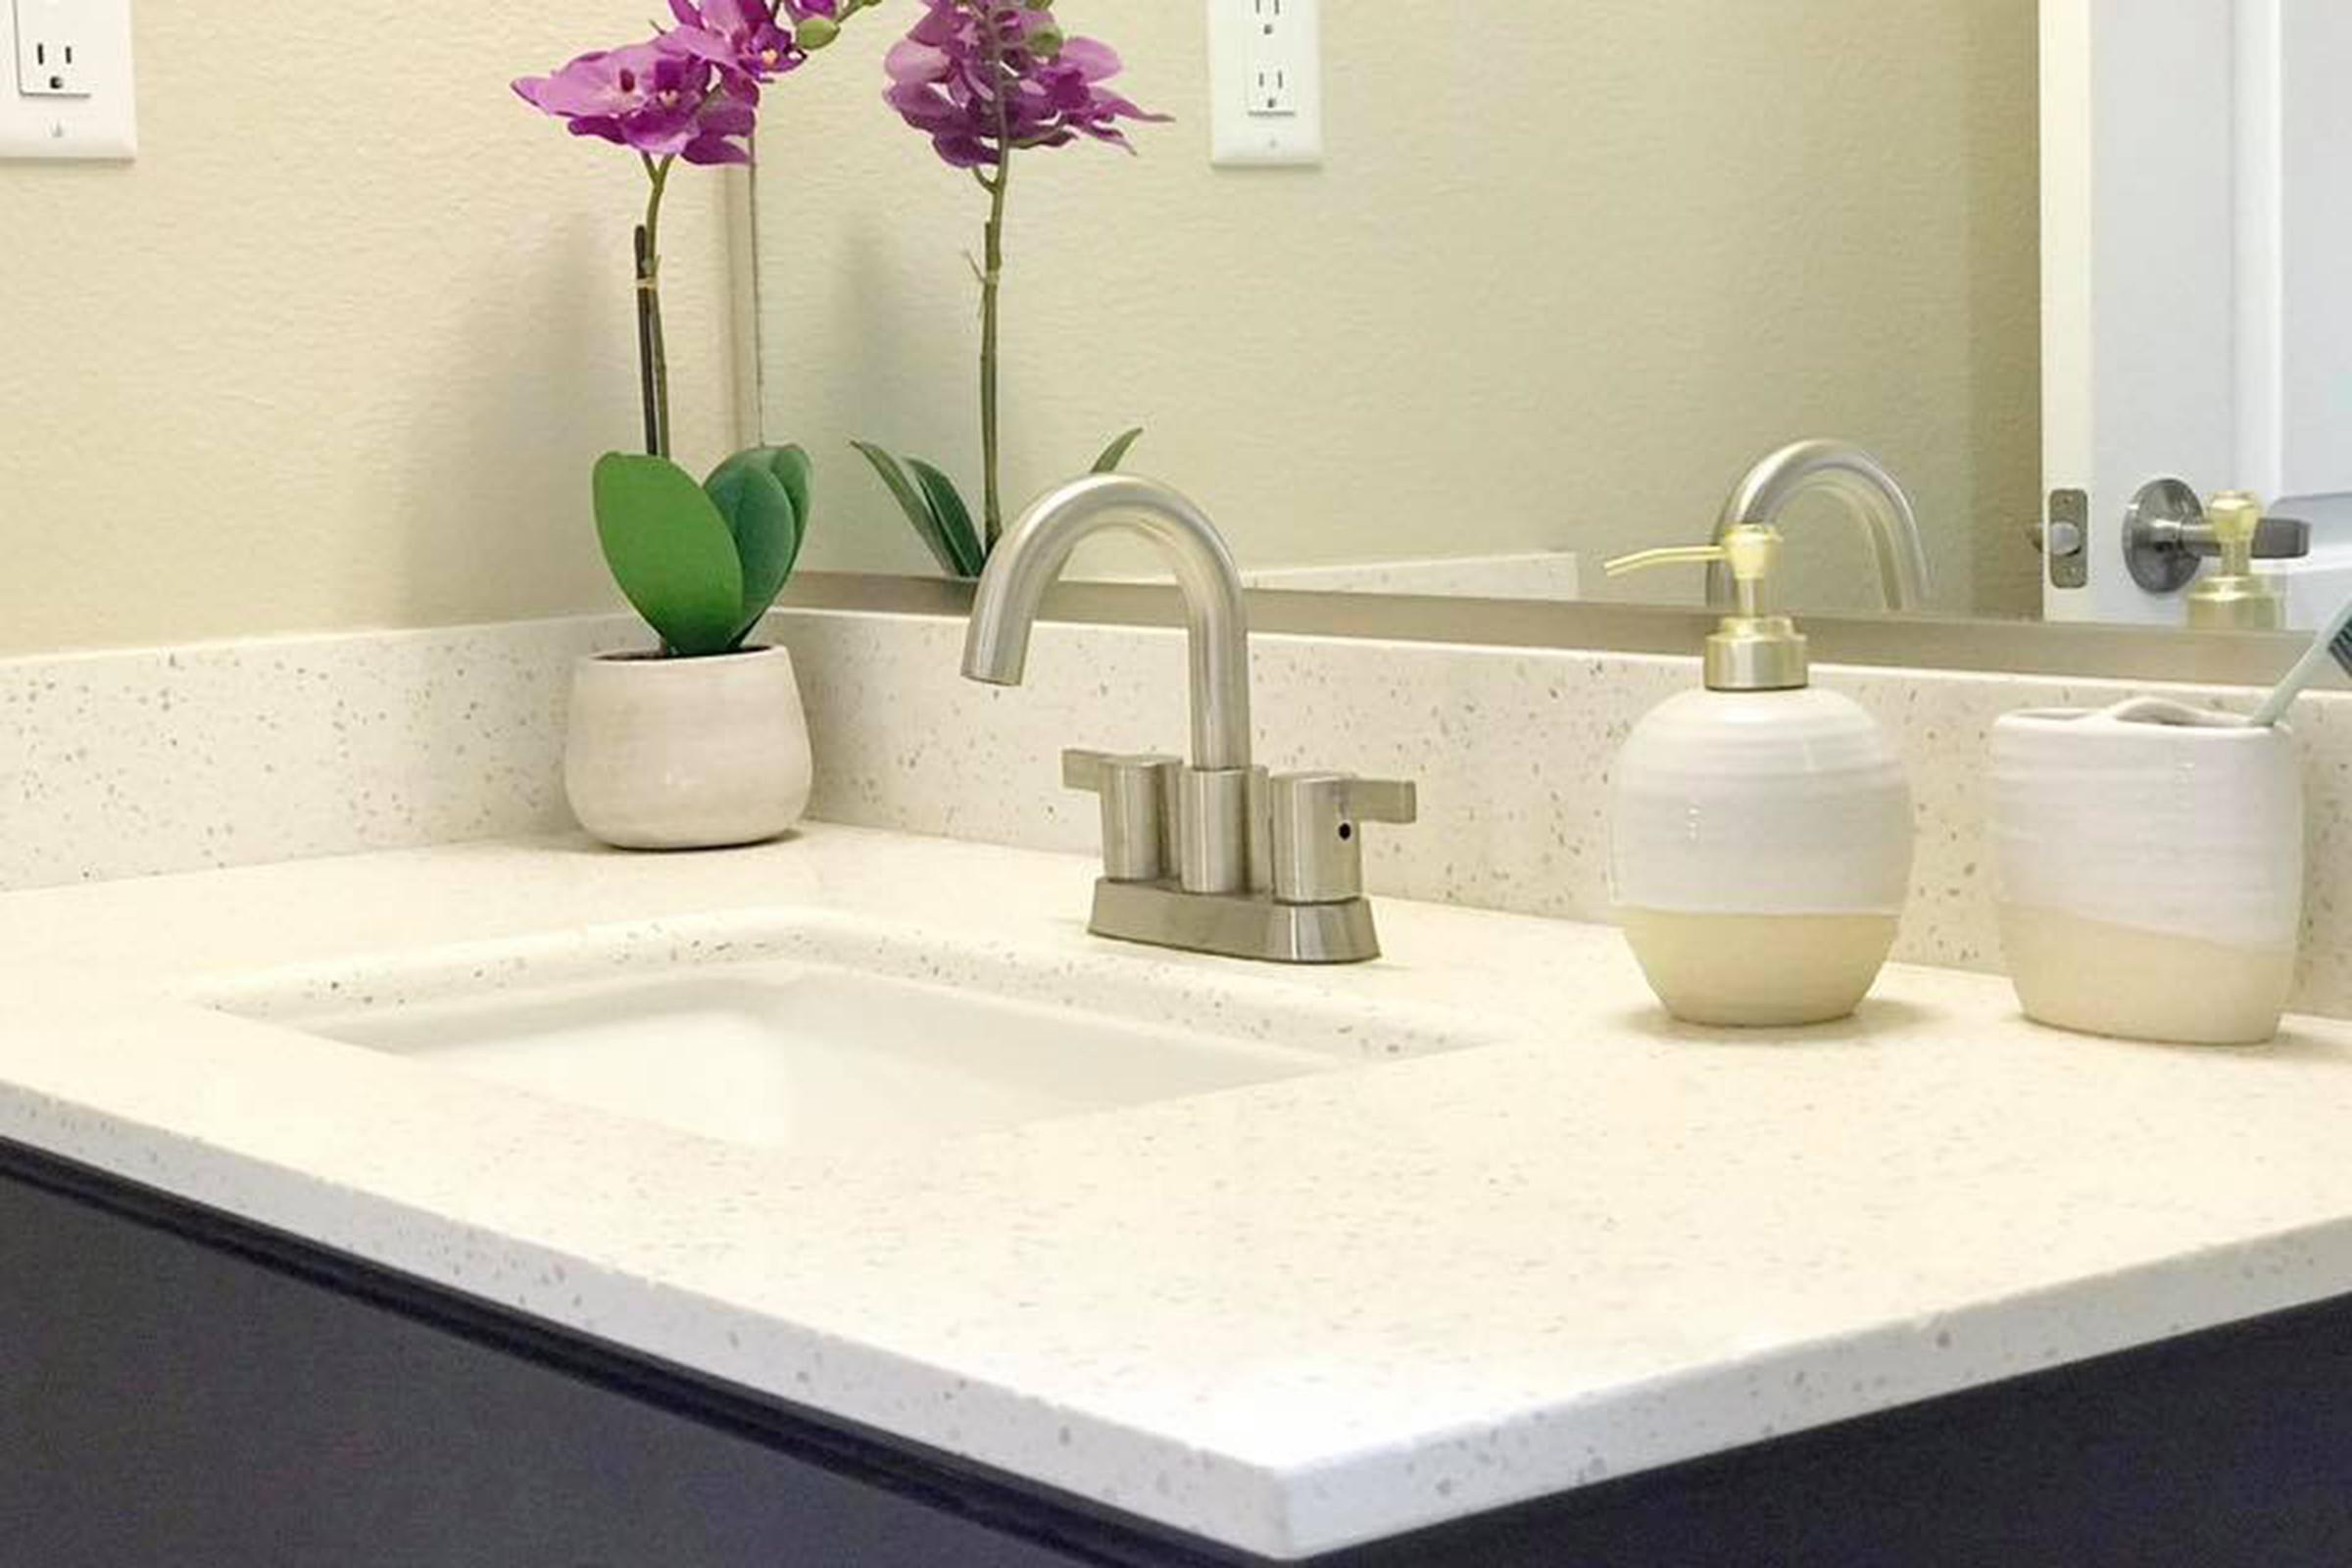 a white sink sitting next to a vase of flowers on a table